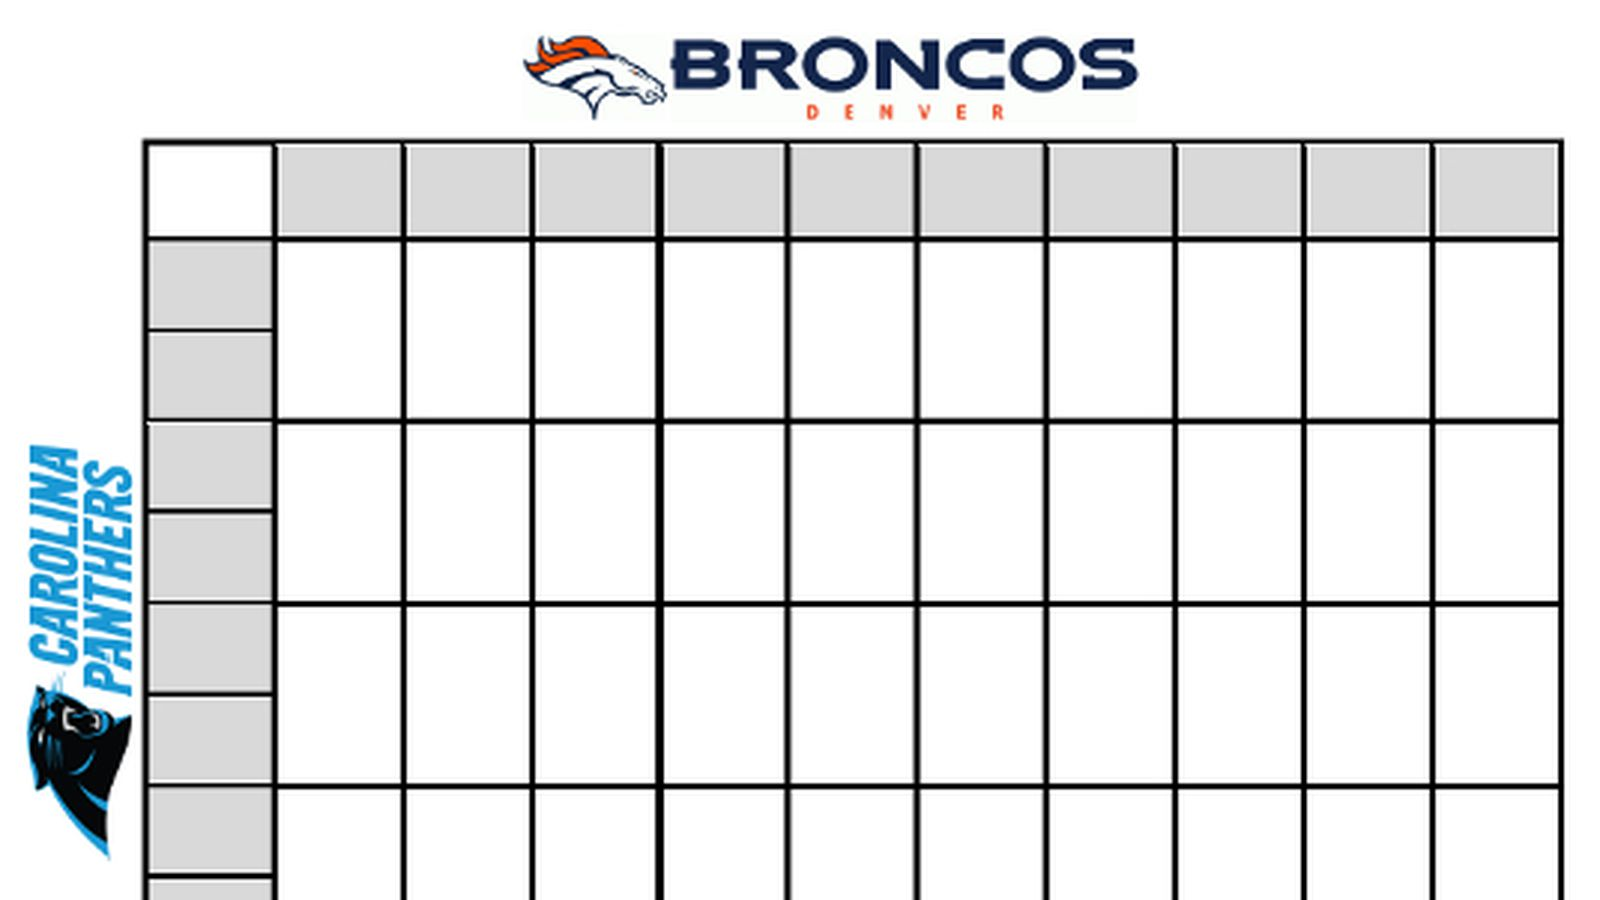 Super Bowl Squares Template How To Play Online And More | India Daily ...